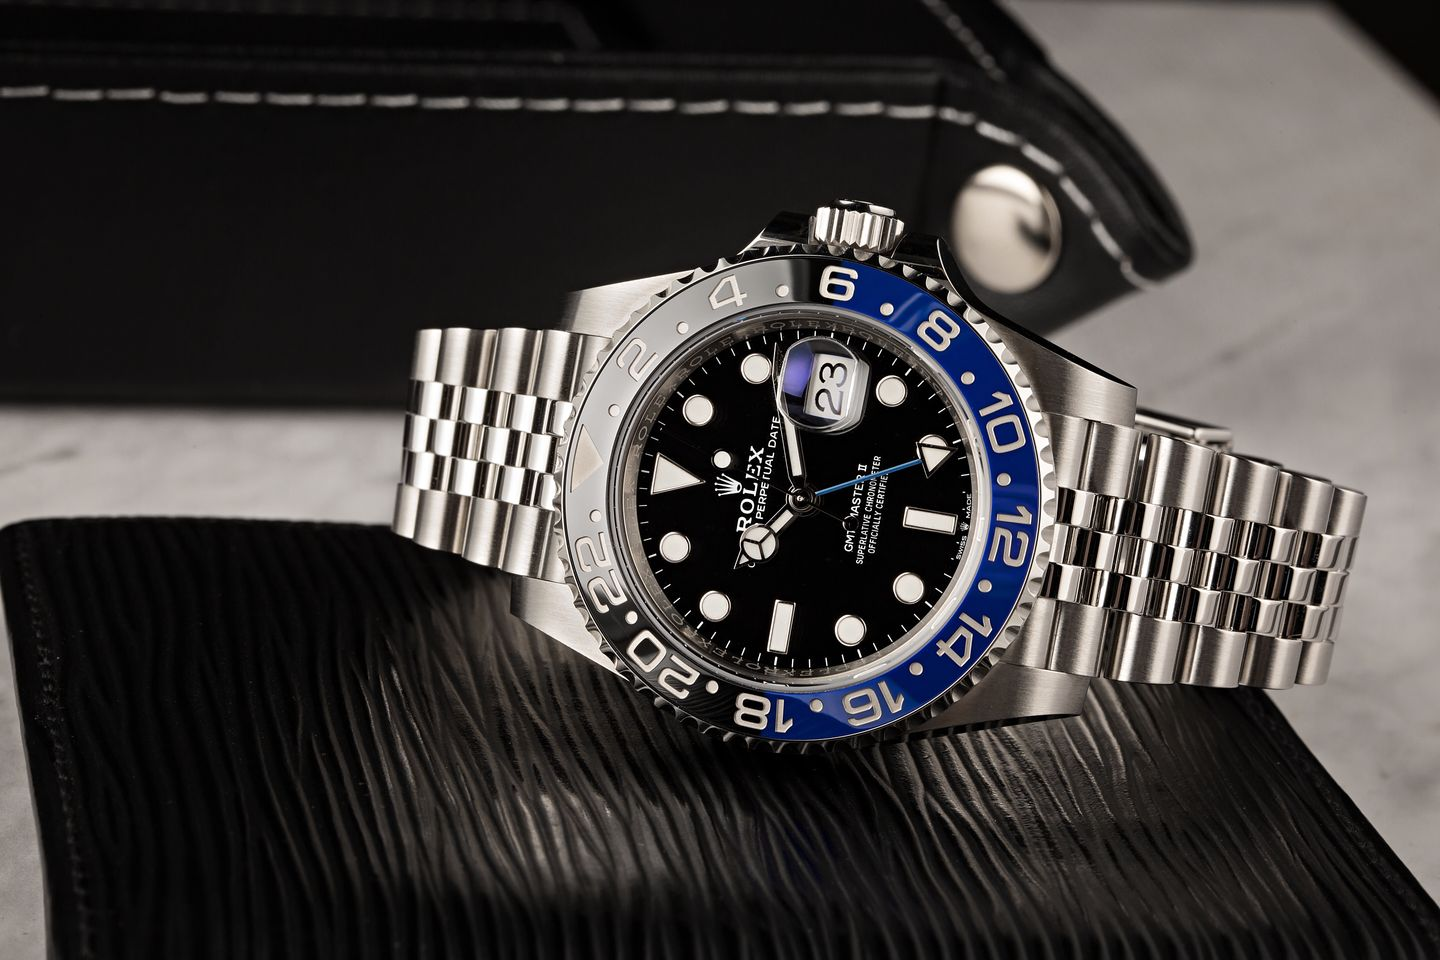 Rolex GMT-Master II Tutorial - How to Track 3 Time Zones Batgirl